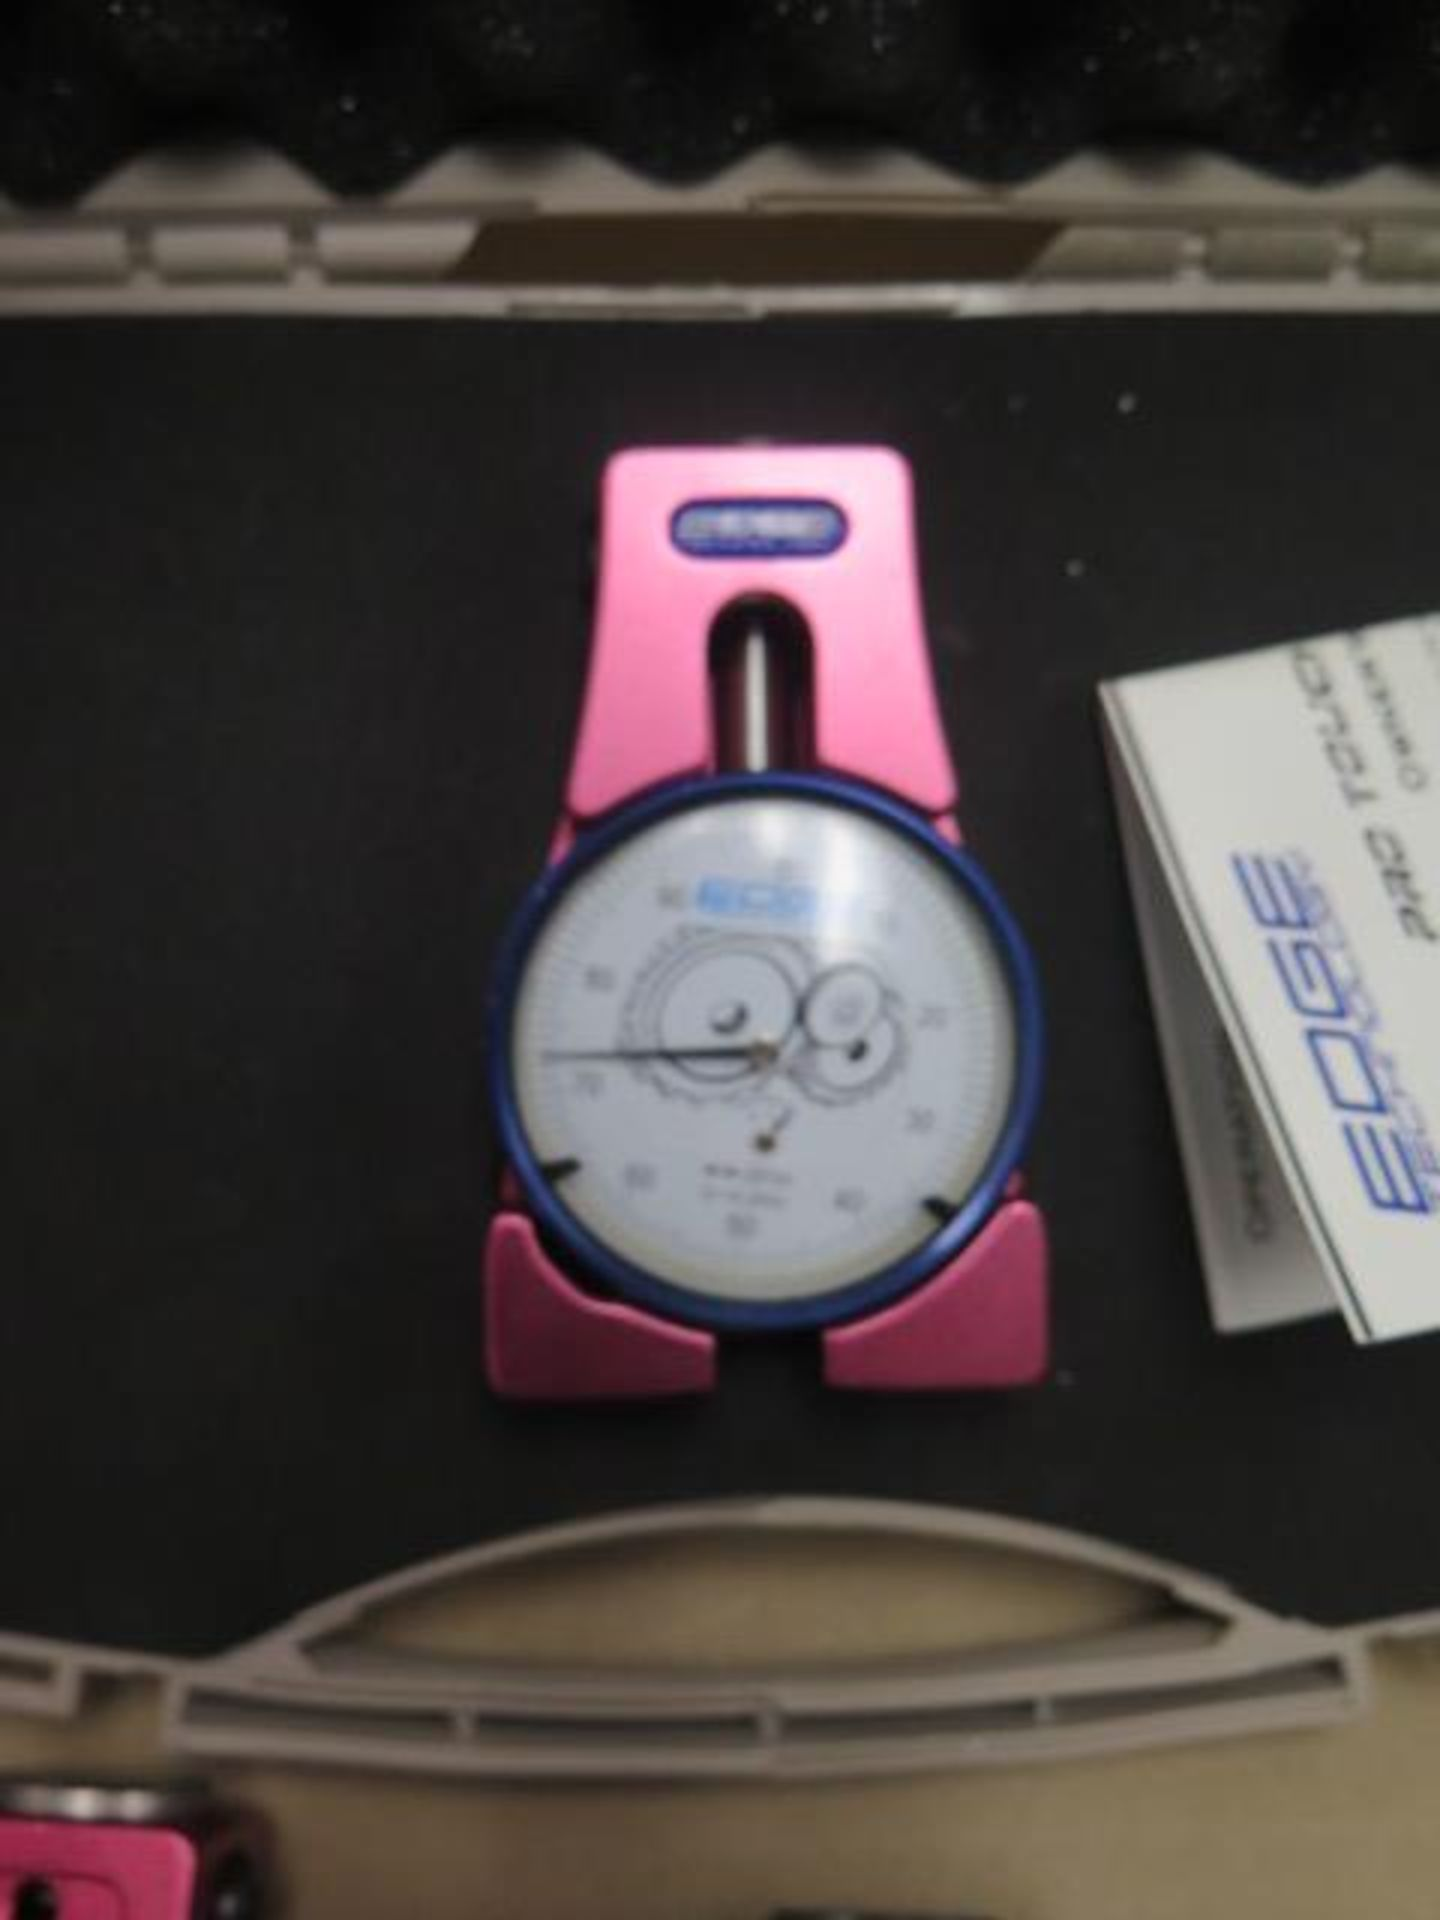 Edge Technology Pro Touch Off Gages (2) and Magnetic Base Touch Off Gage (SOLD AS-IS - NO WARRANTY) - Image 2 of 4